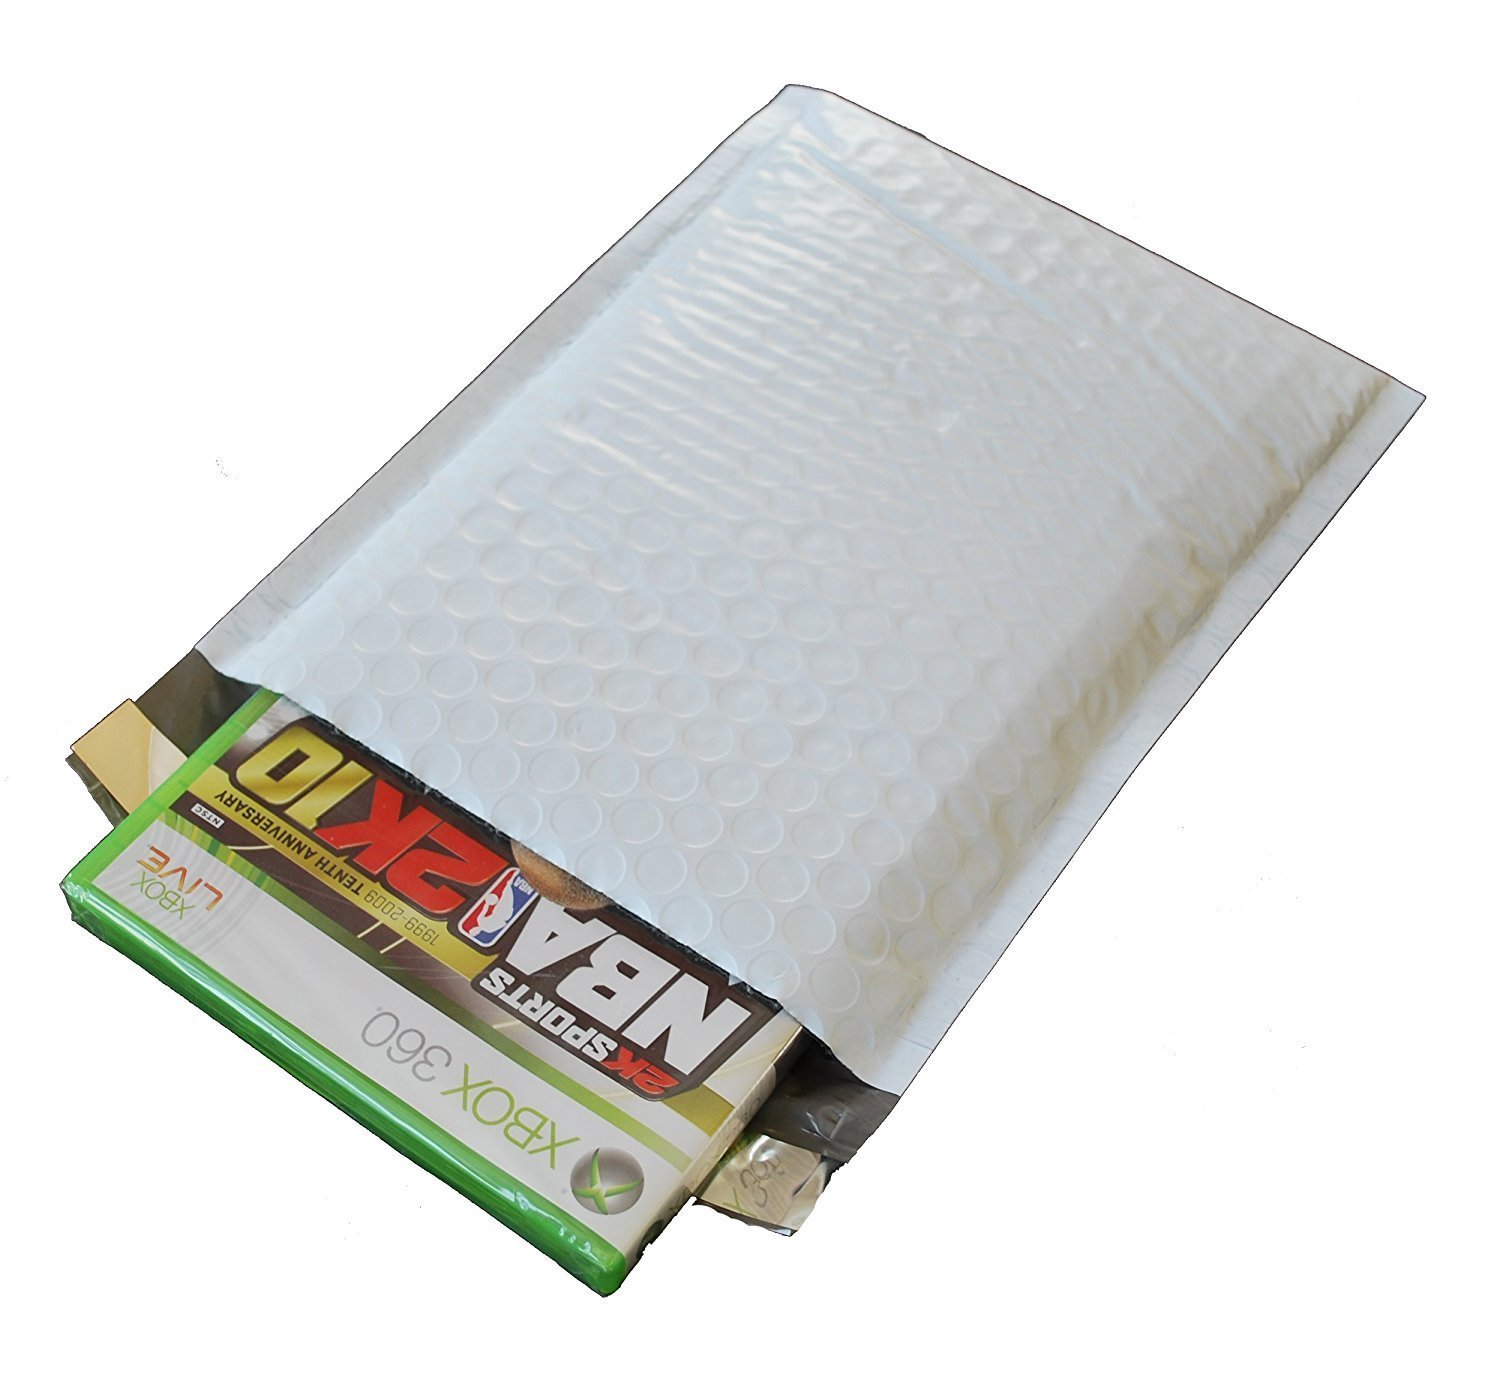 200 Poly Bubble Mailers, 2 8.5'' X 12'' Poly Bubble Mailers Padded Envelopes, 200 Ct by ValueMailers